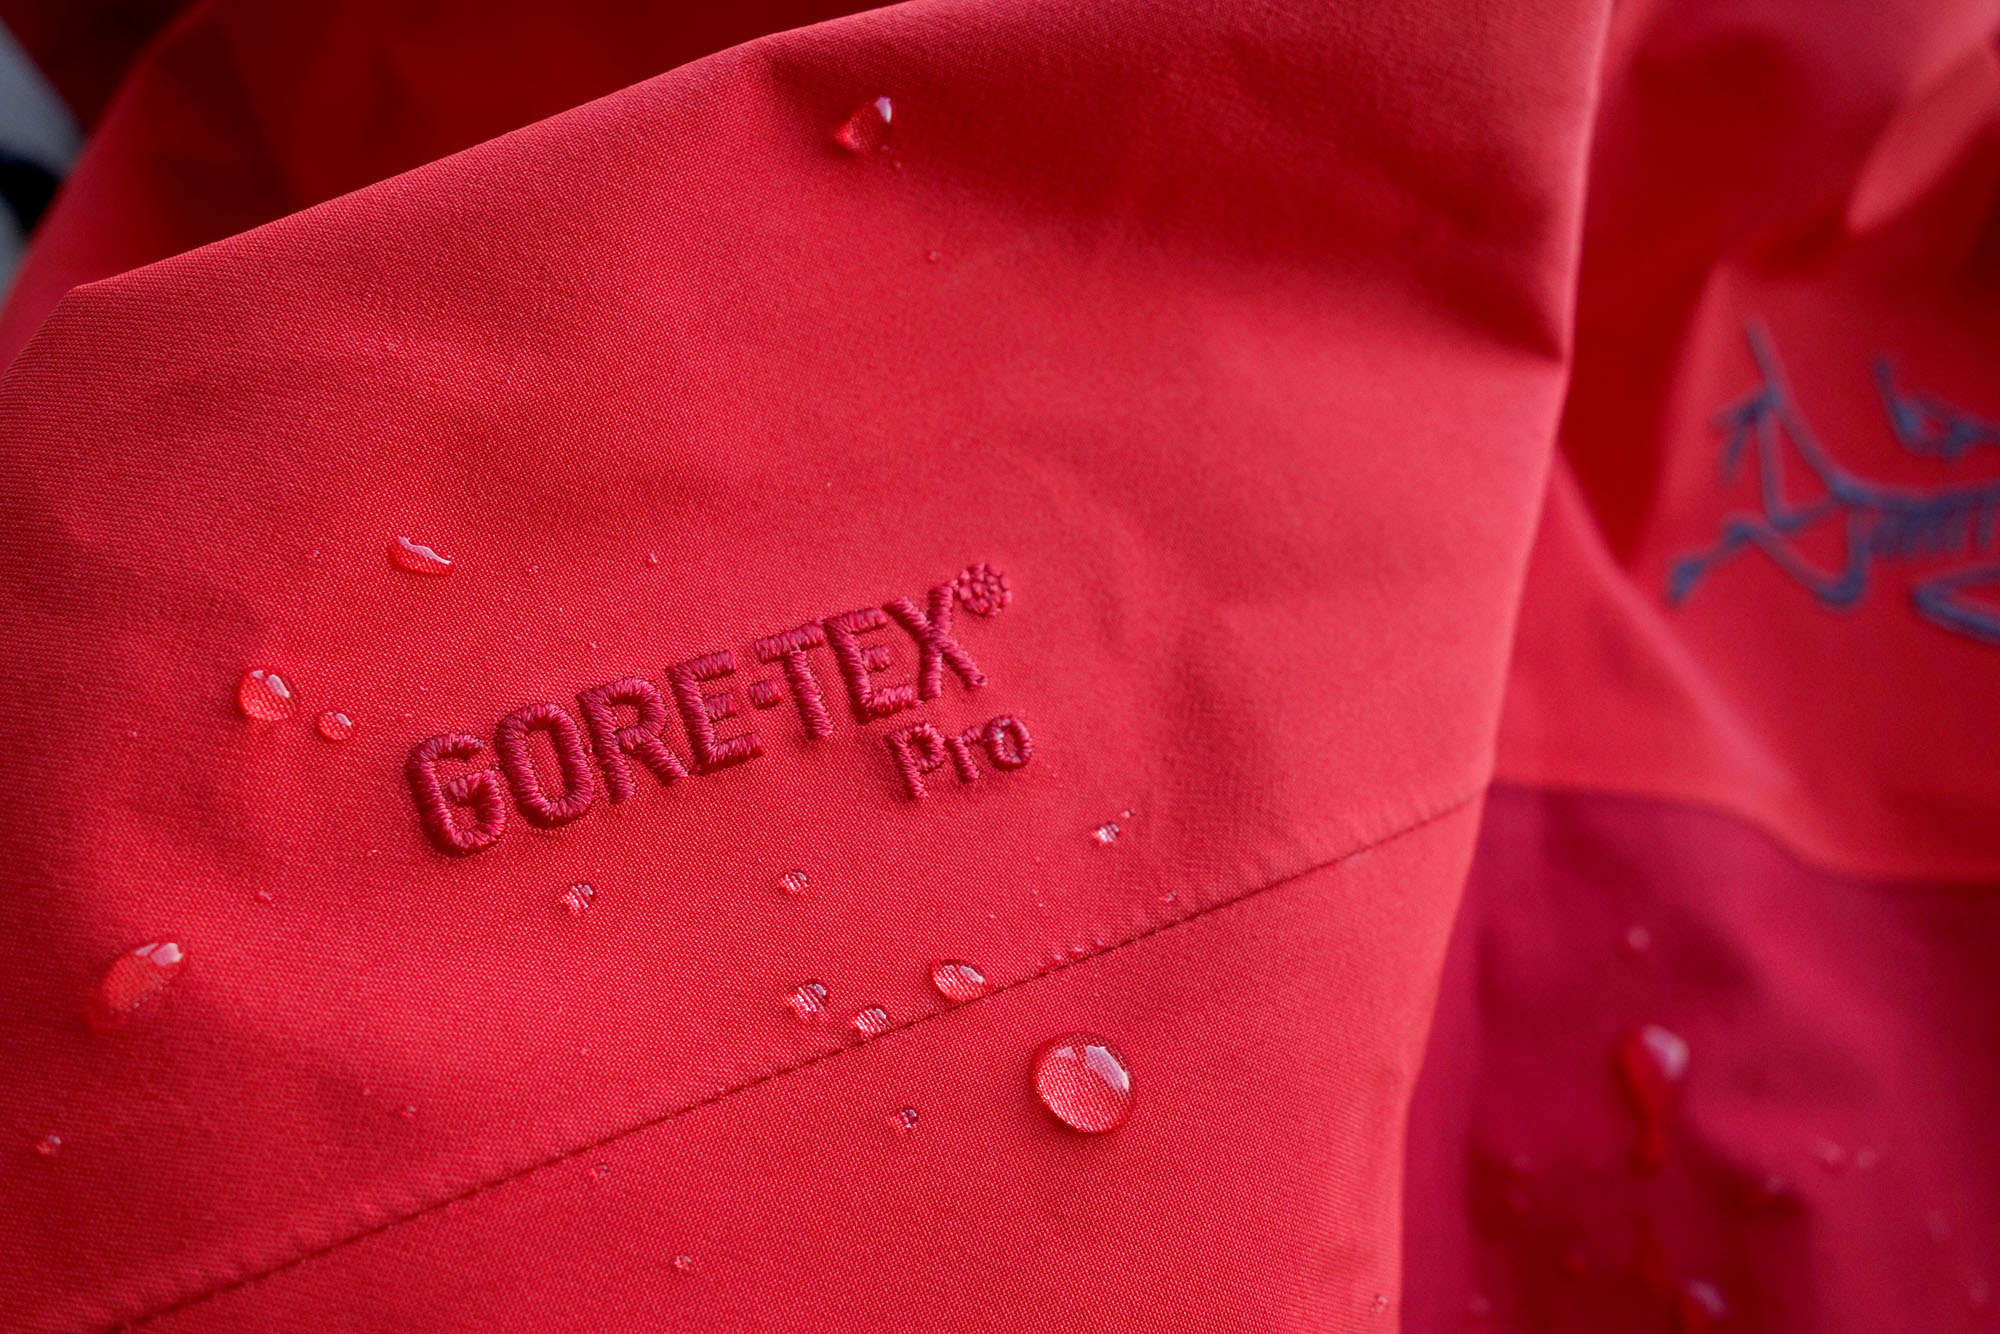 Ski jacket (Gore-Tex Pro fabric)